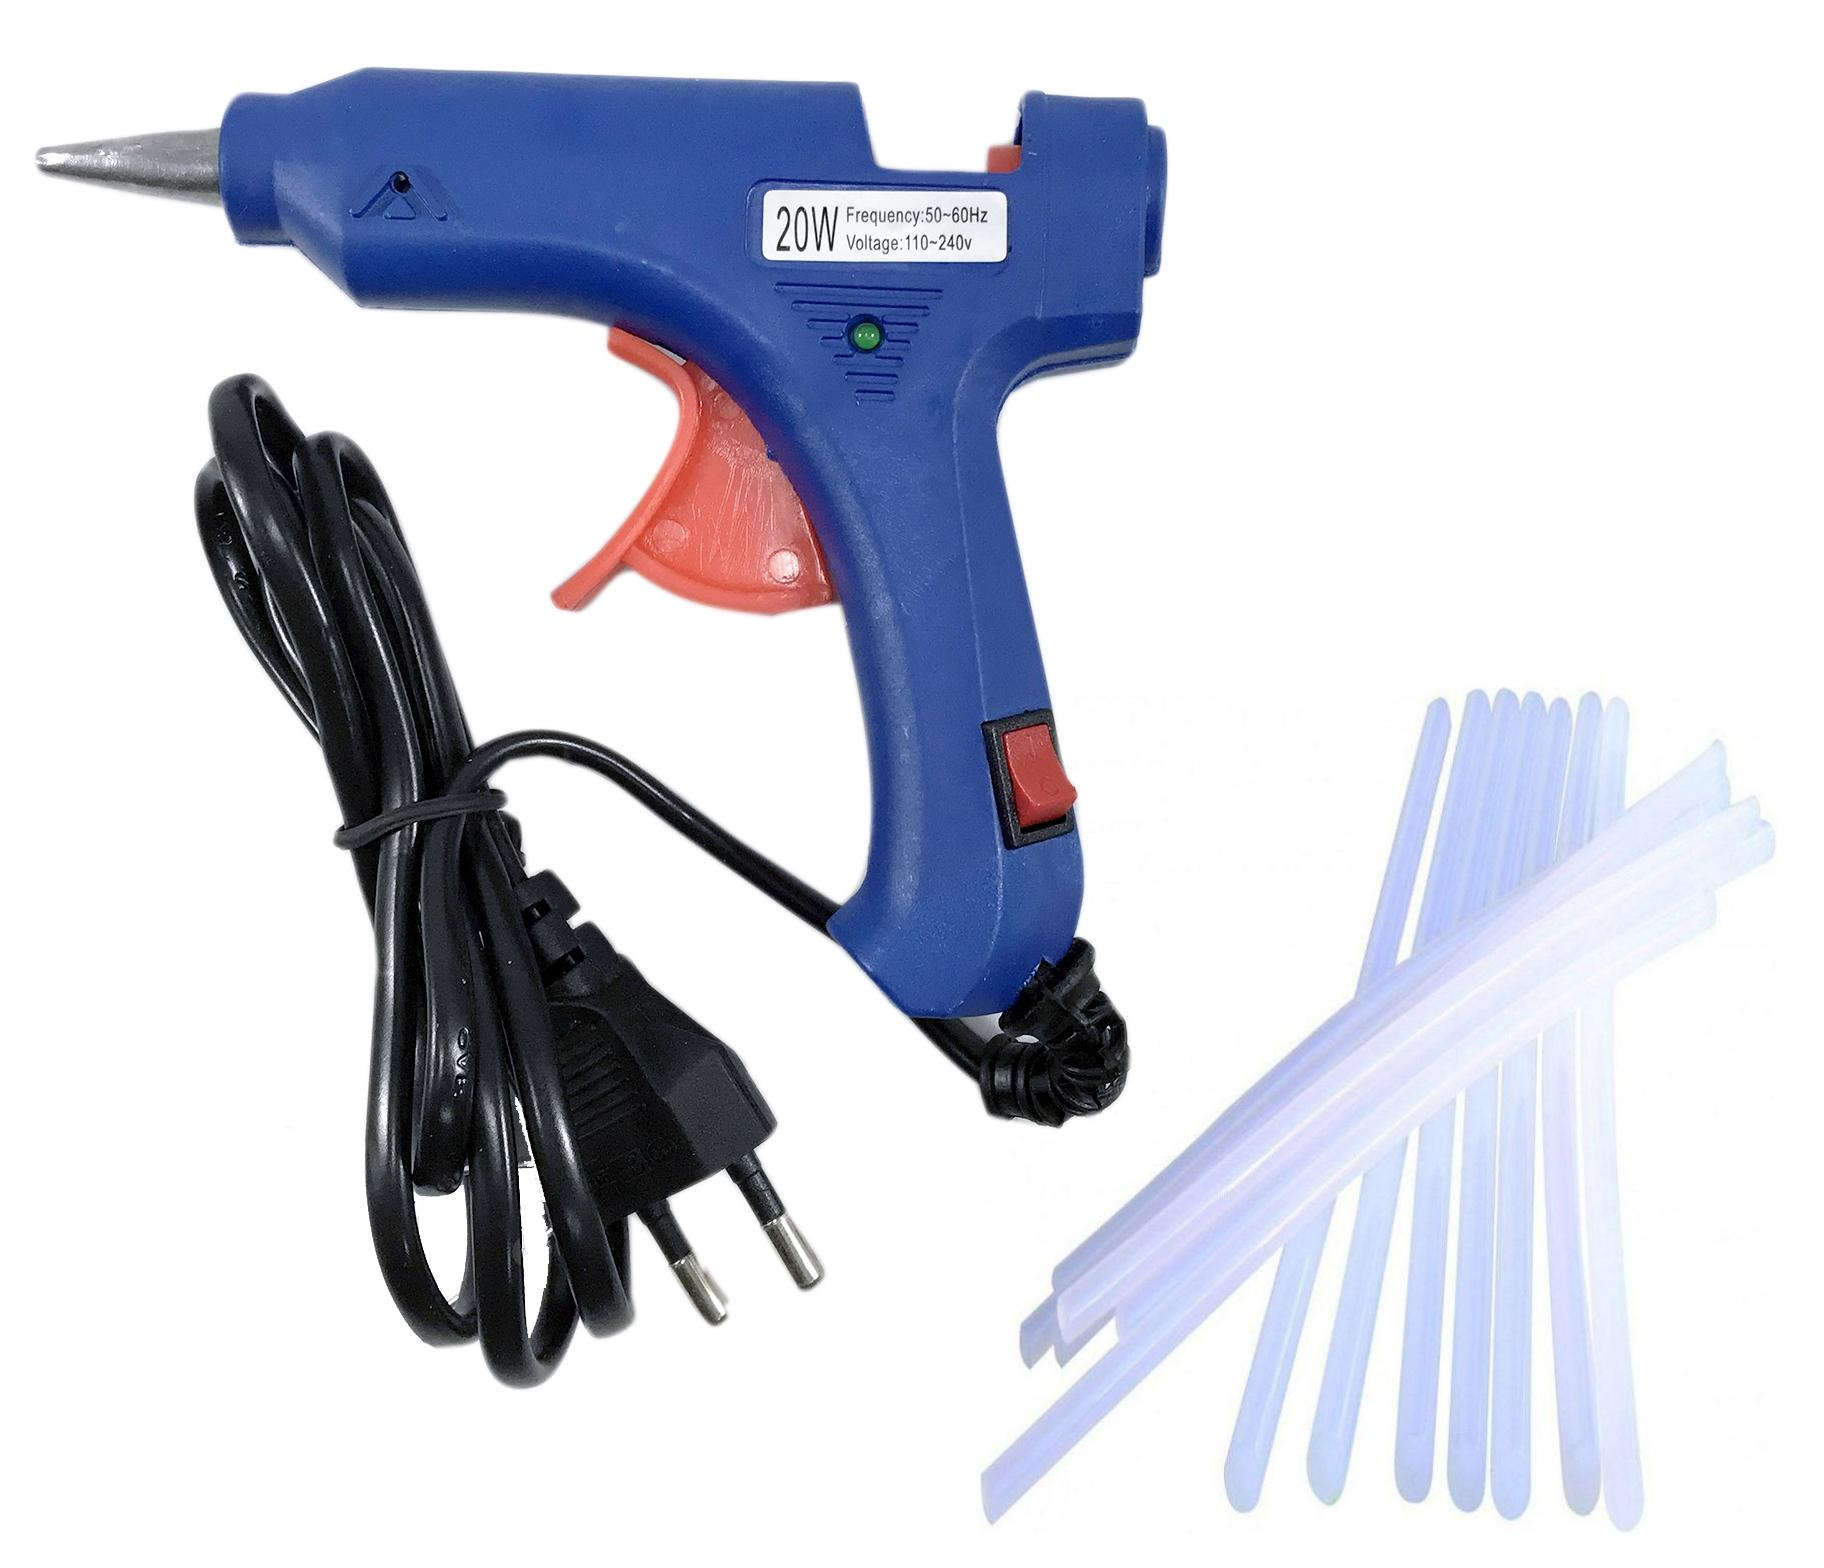 Electric Glue Gun 20W - With 20 Glue Sticks